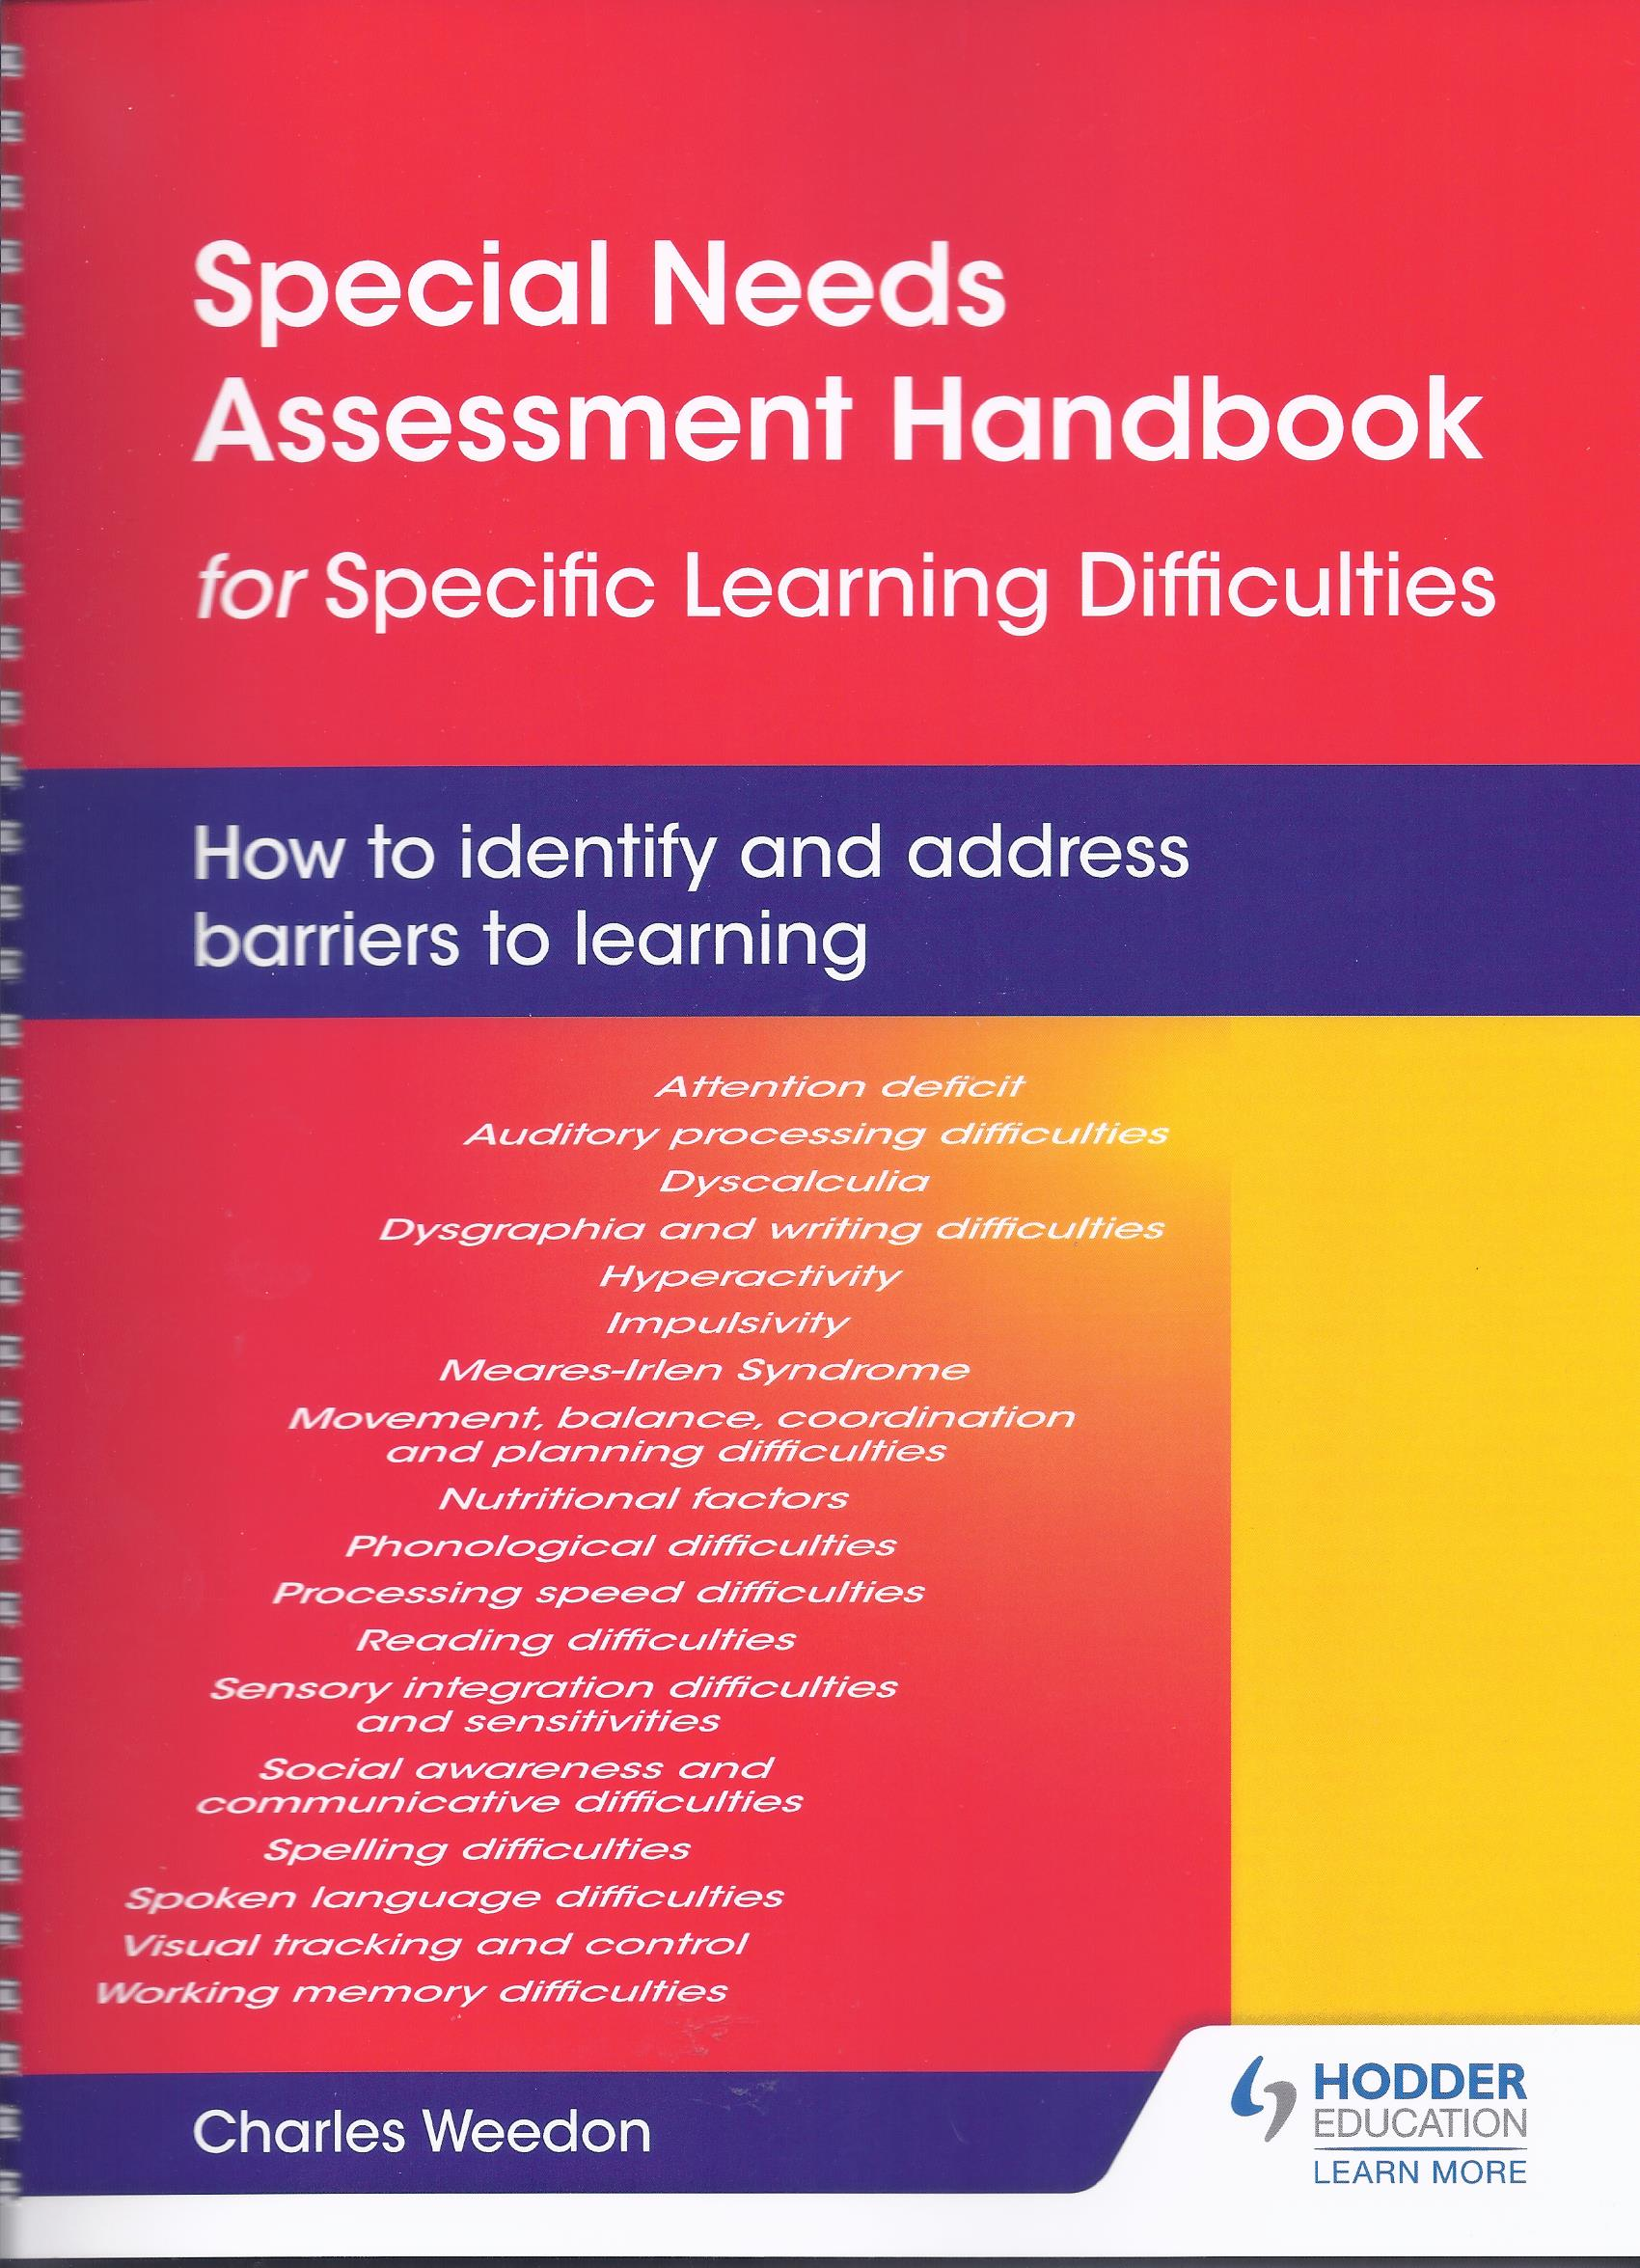 Special Needs Assessment Handbook for Specific Learning Difficulties-0